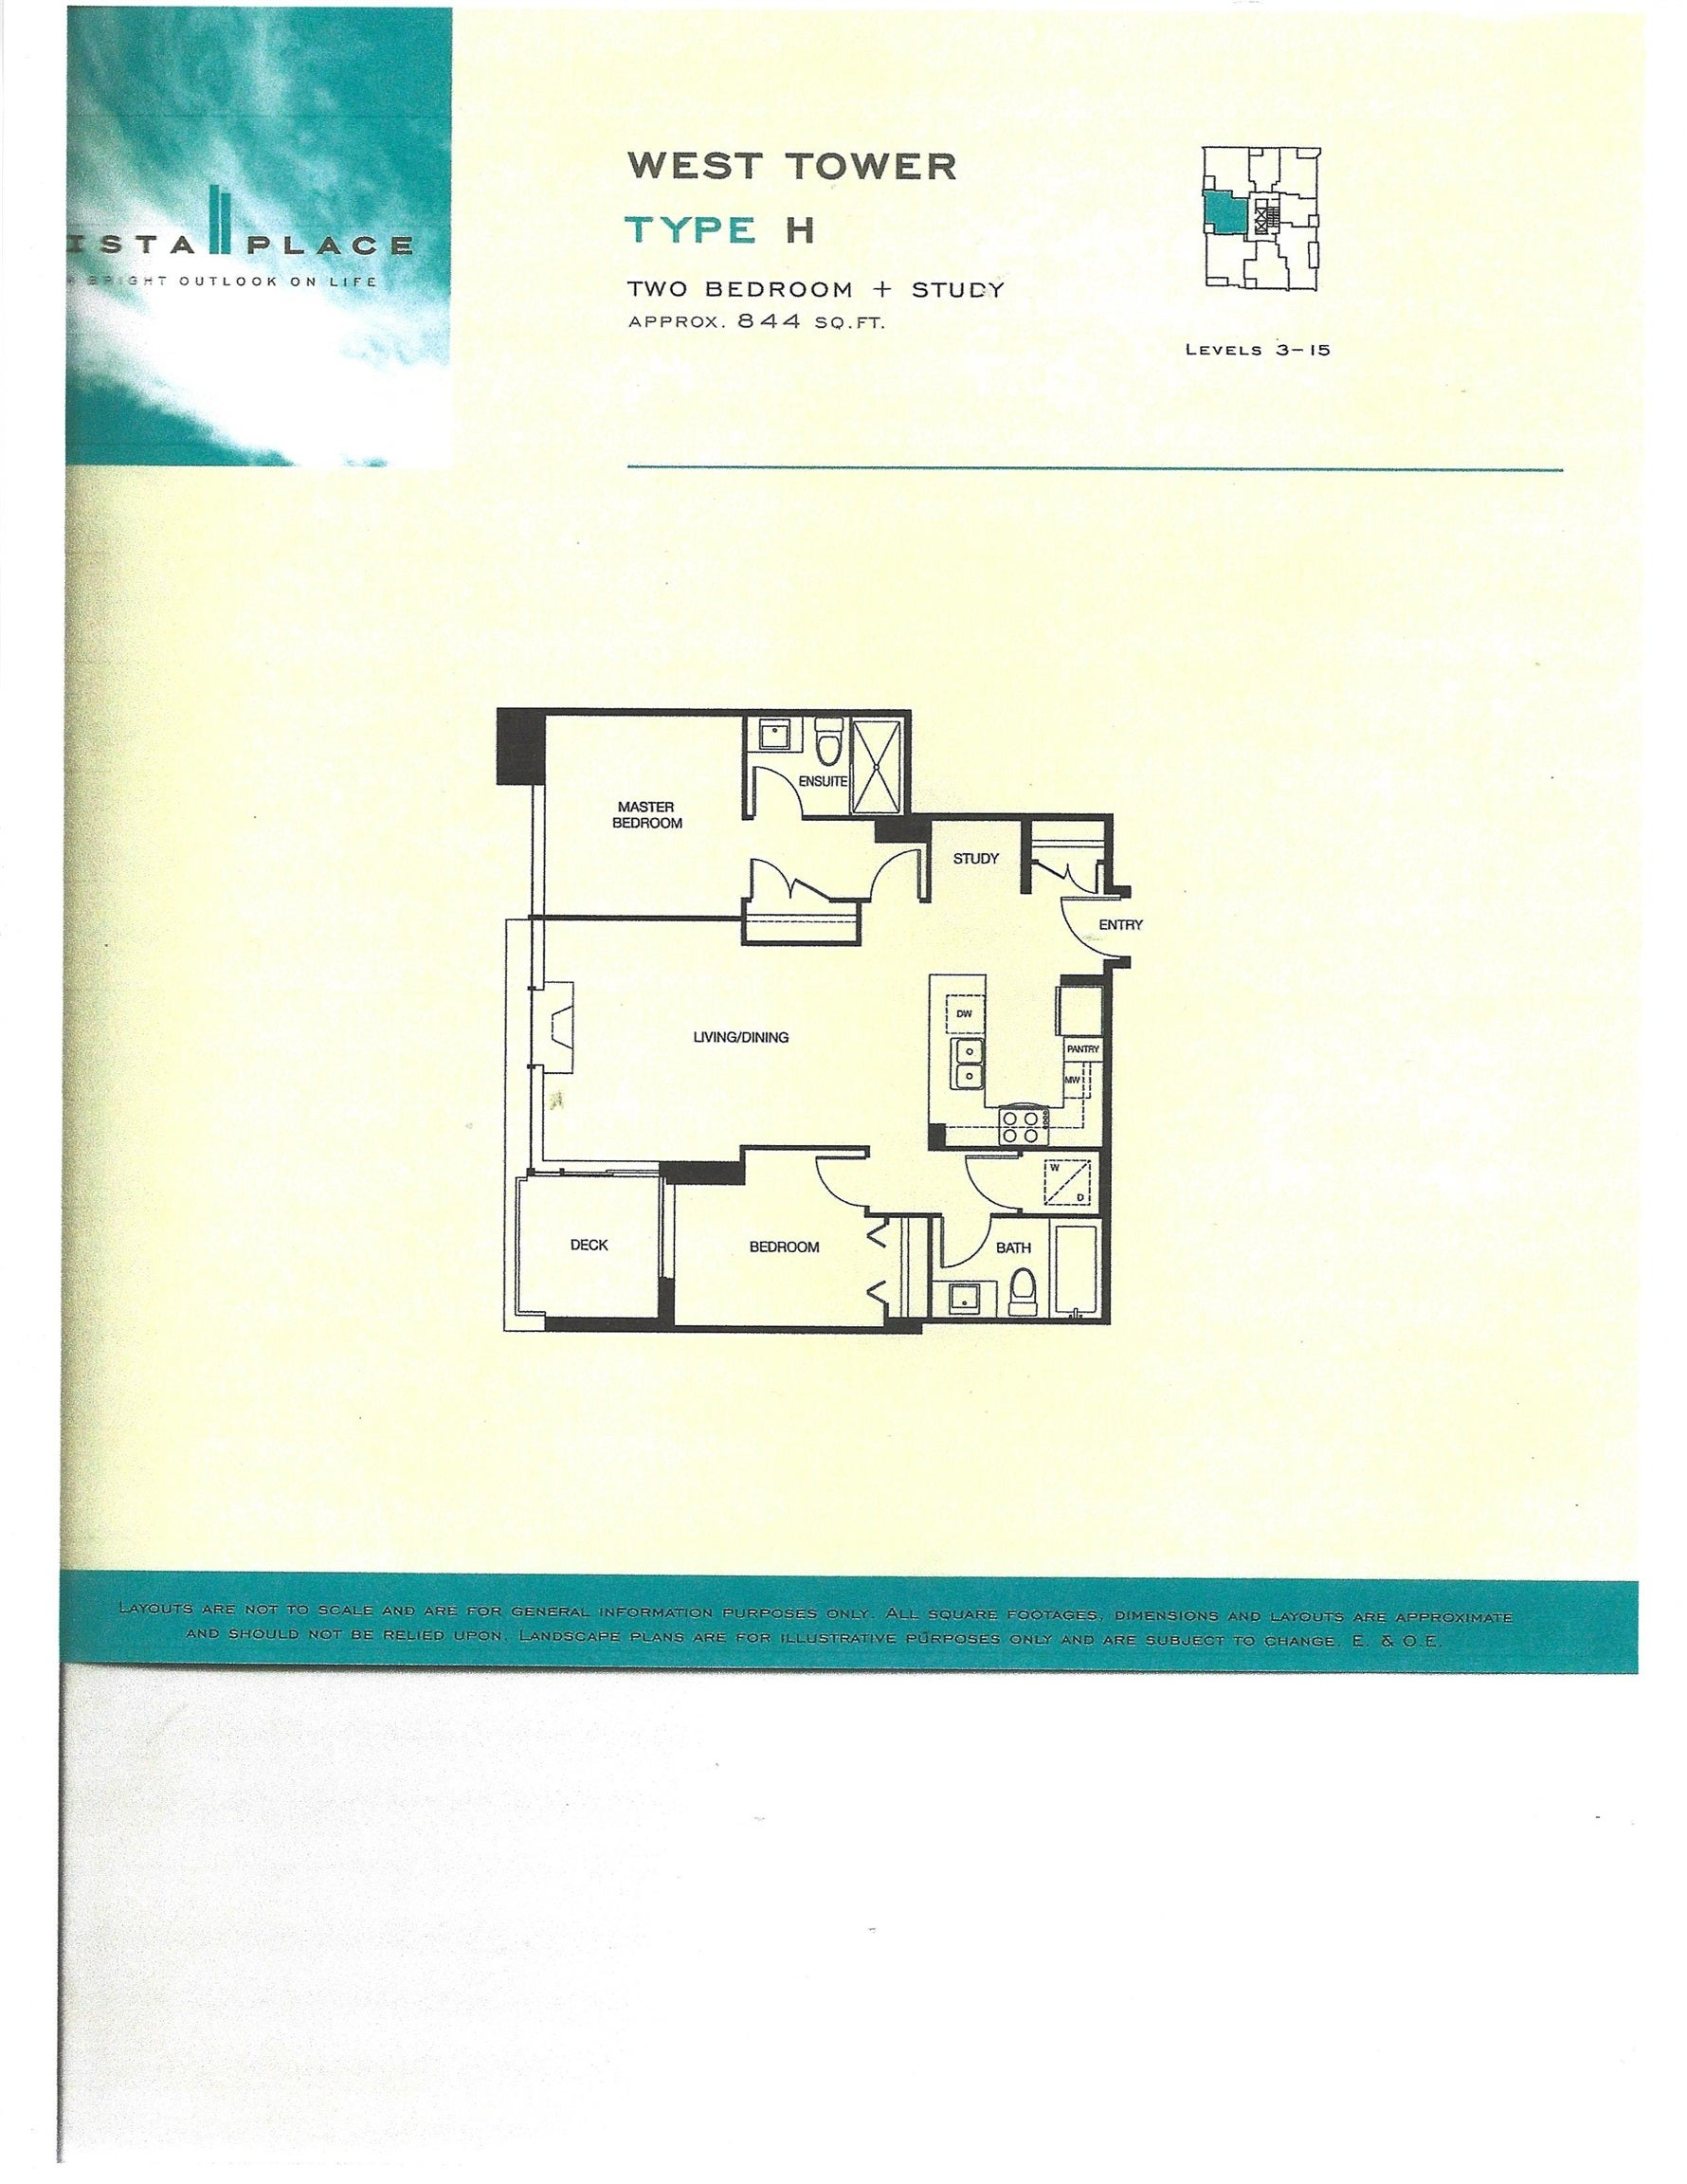 1505 158 W 13TH STREET - Central Lonsdale Apartment/Condo for sale, 2 Bedrooms (R2616868) - #26